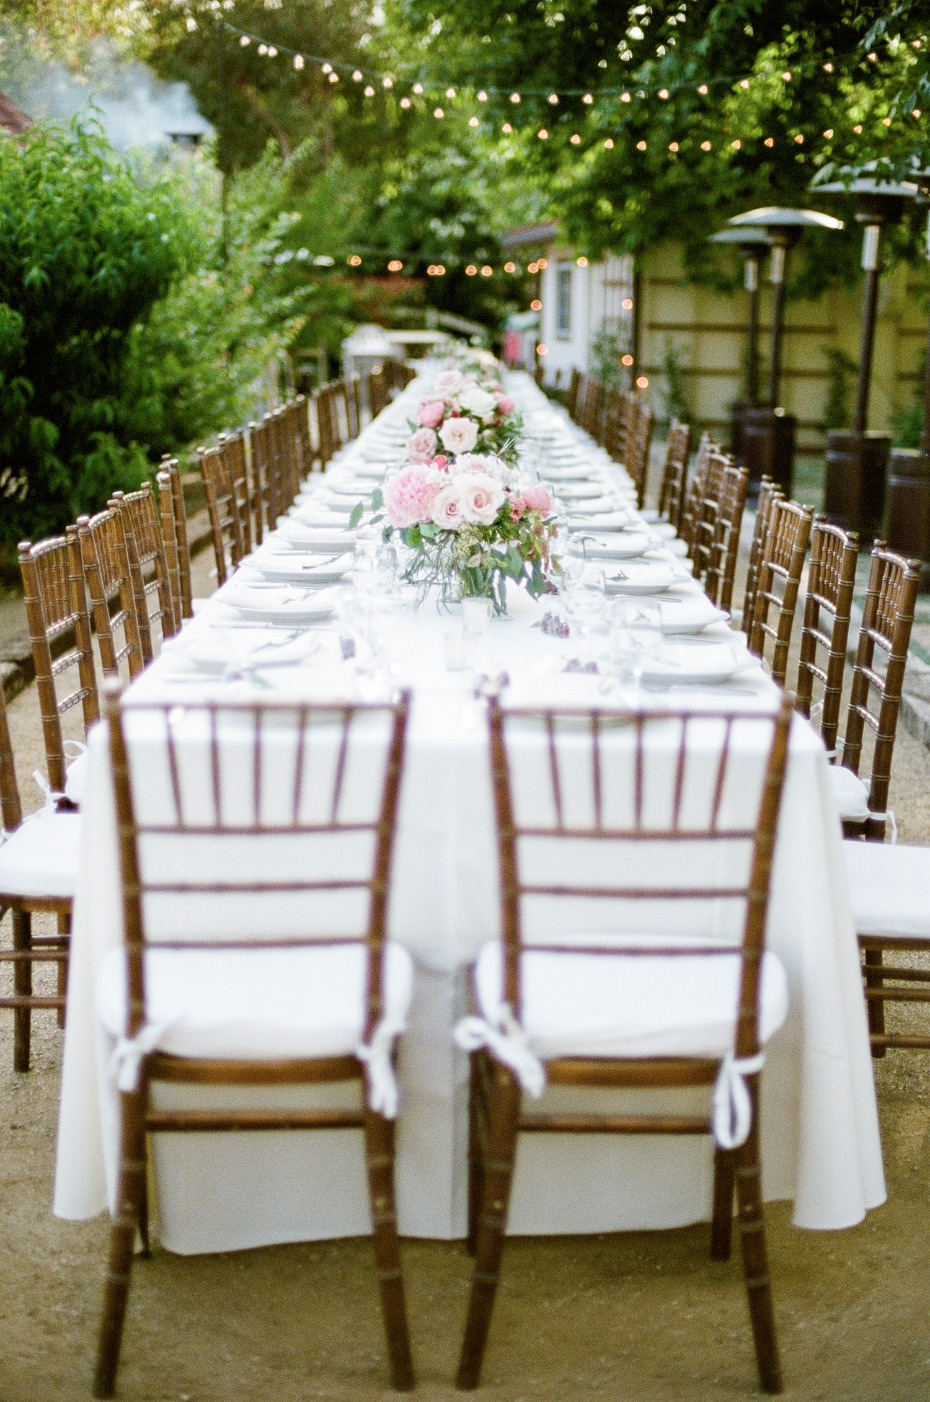 Chic Backyard Garden Wedding at their Family Home